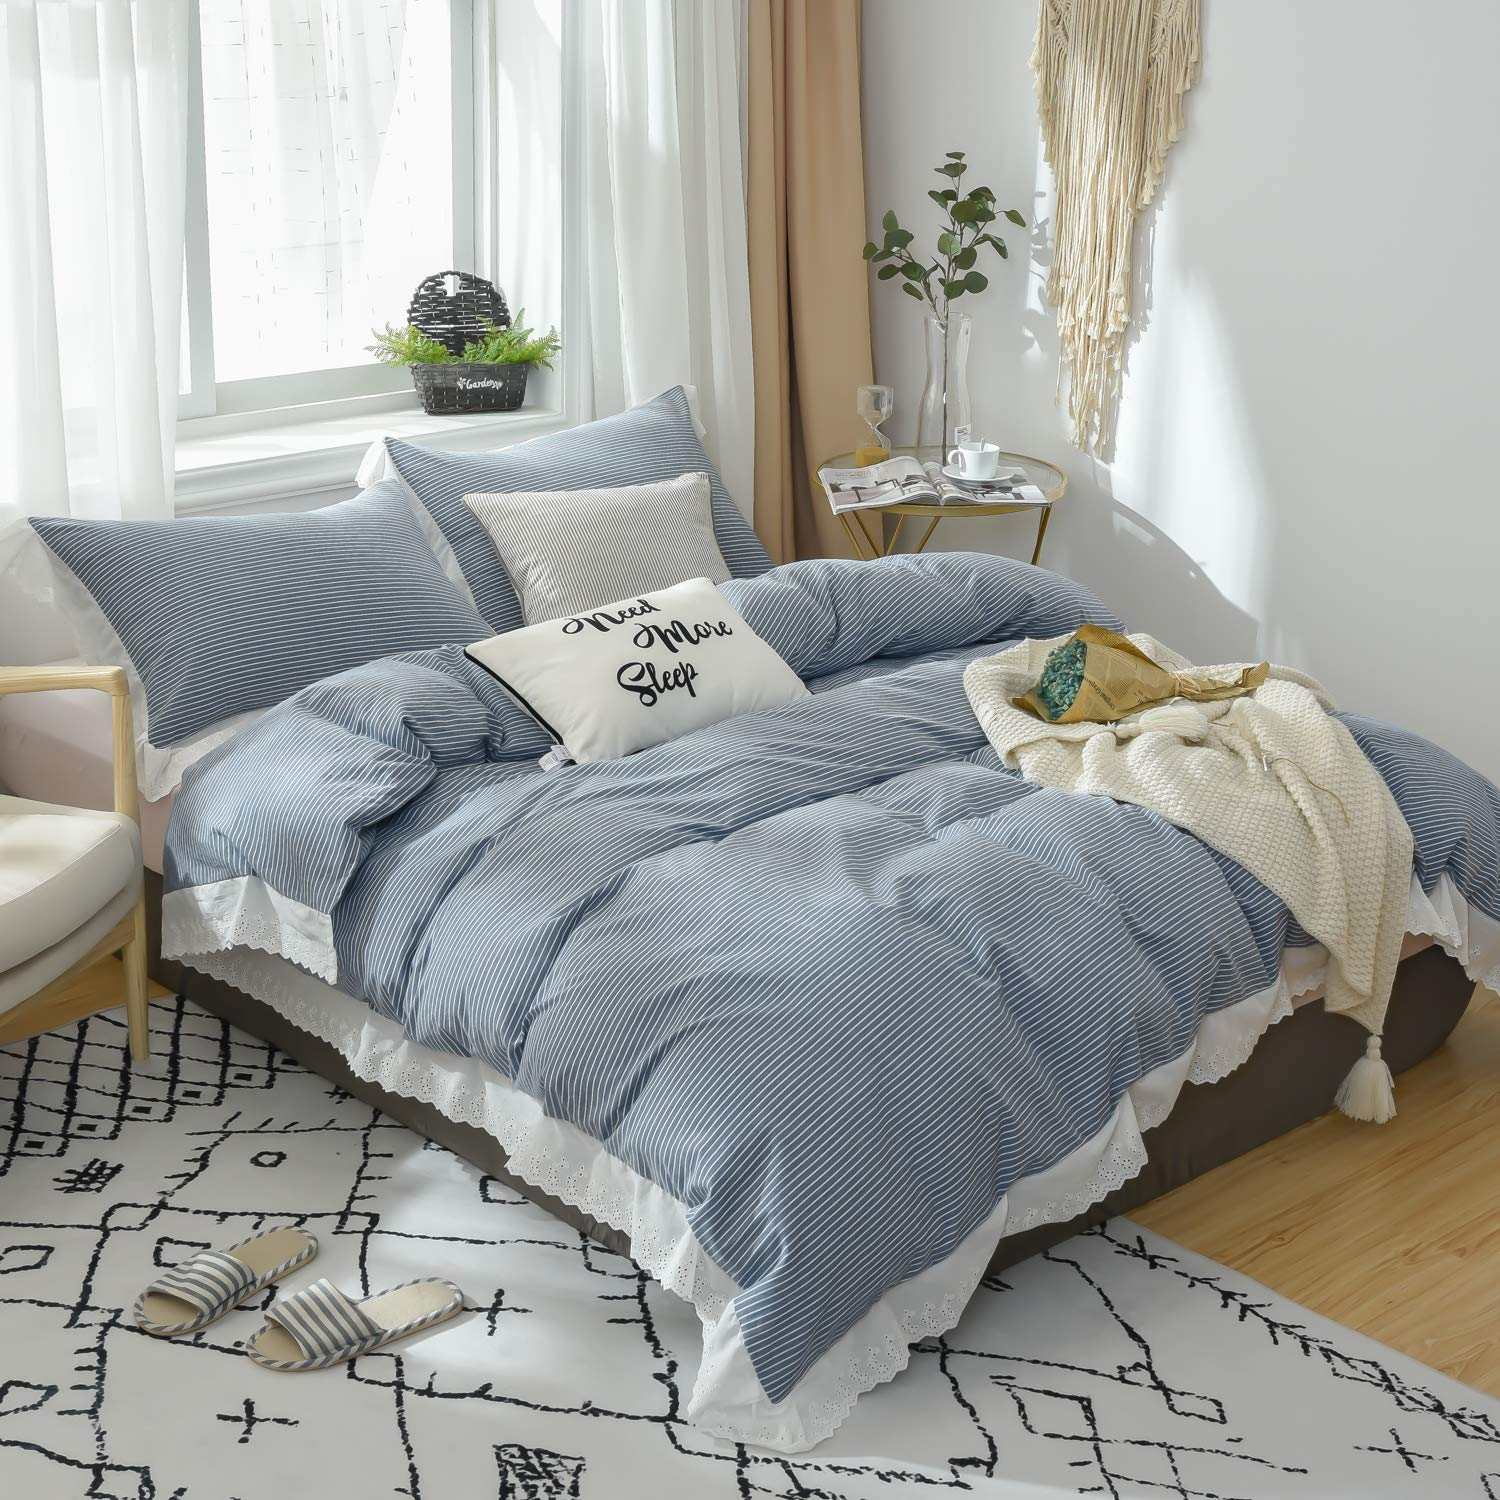 farmhouse-bedding-striped